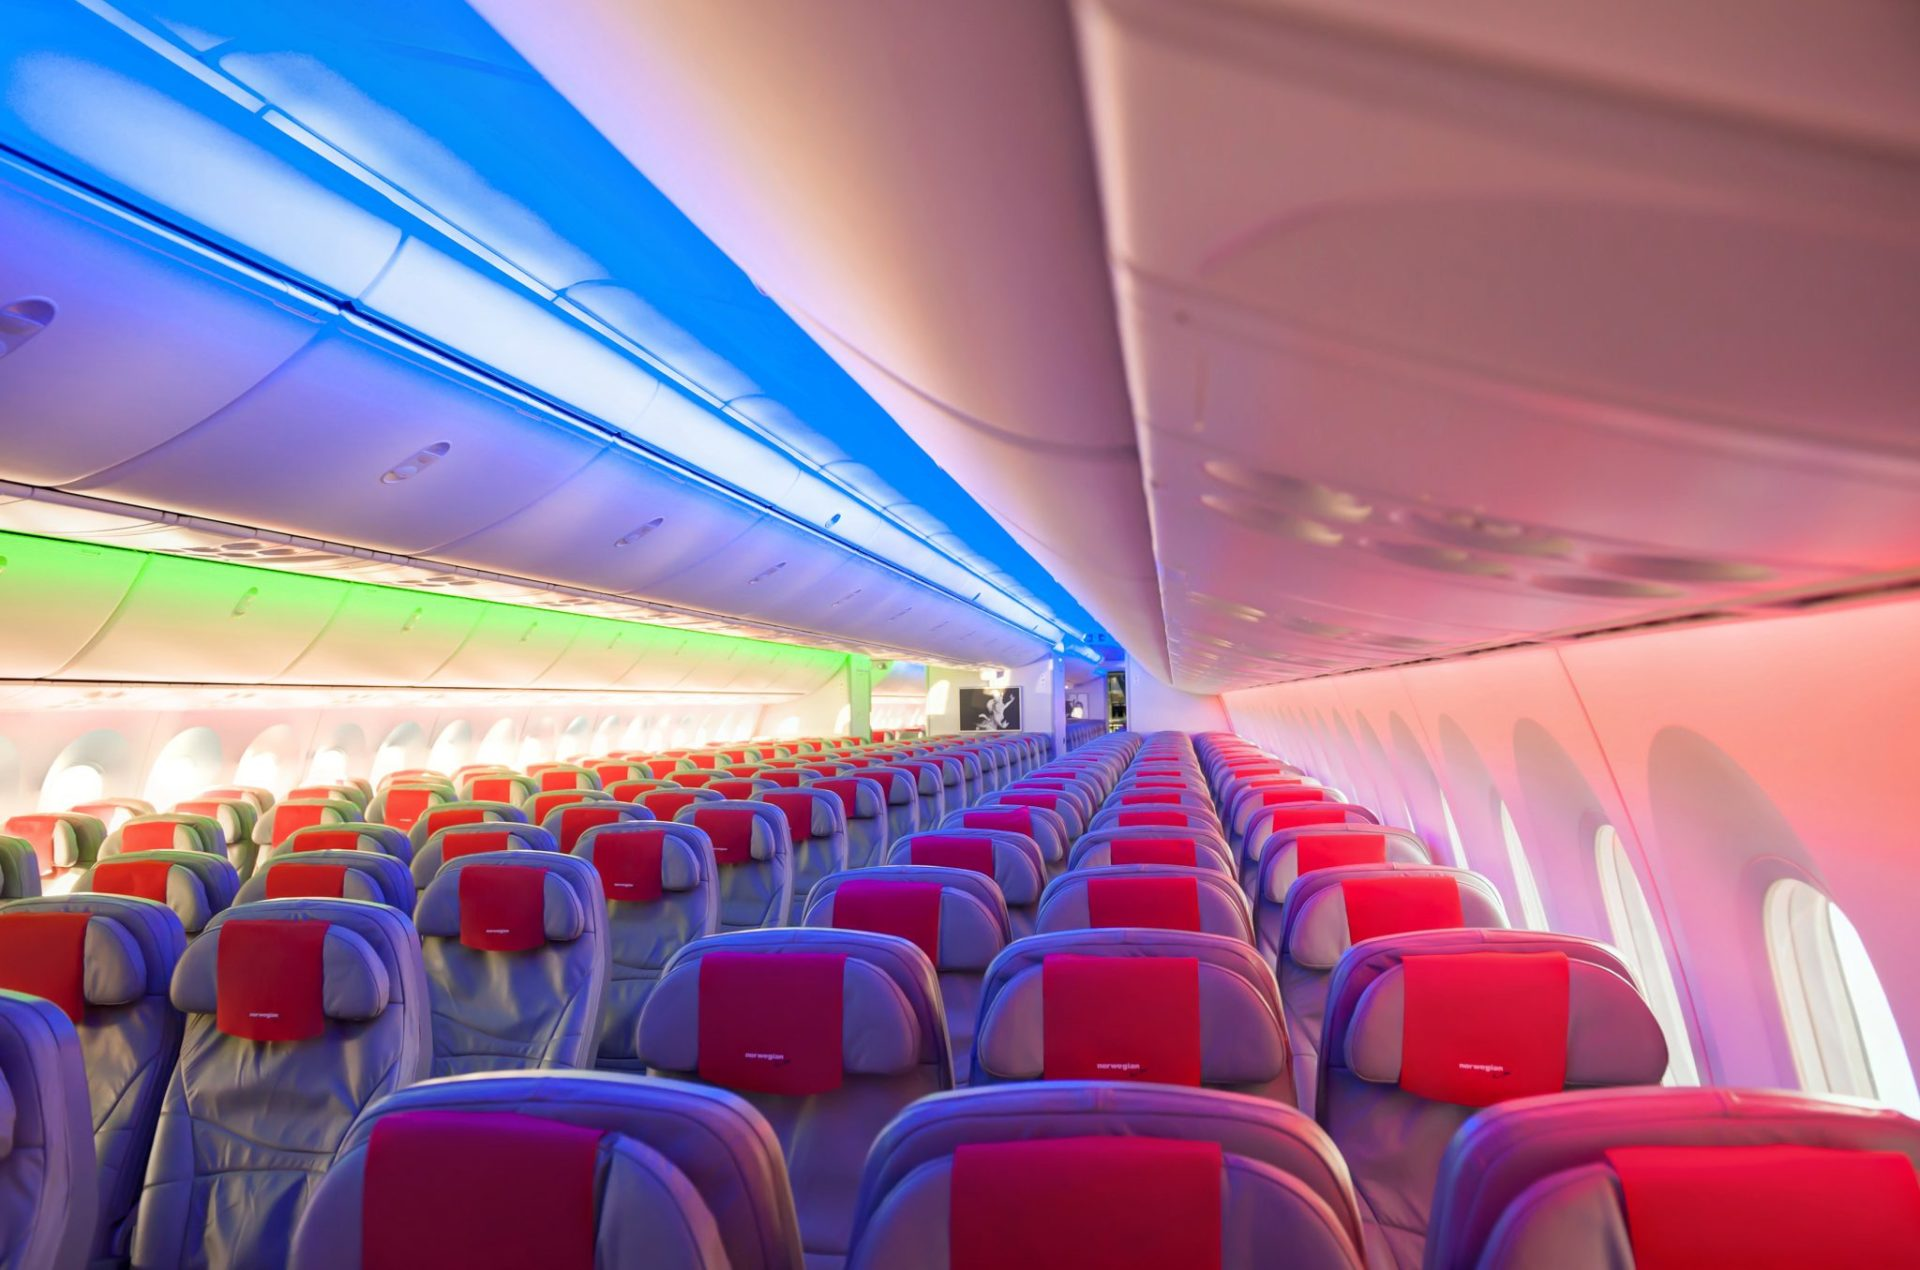 Norwegian Boeing 787 Dreamliner Interior